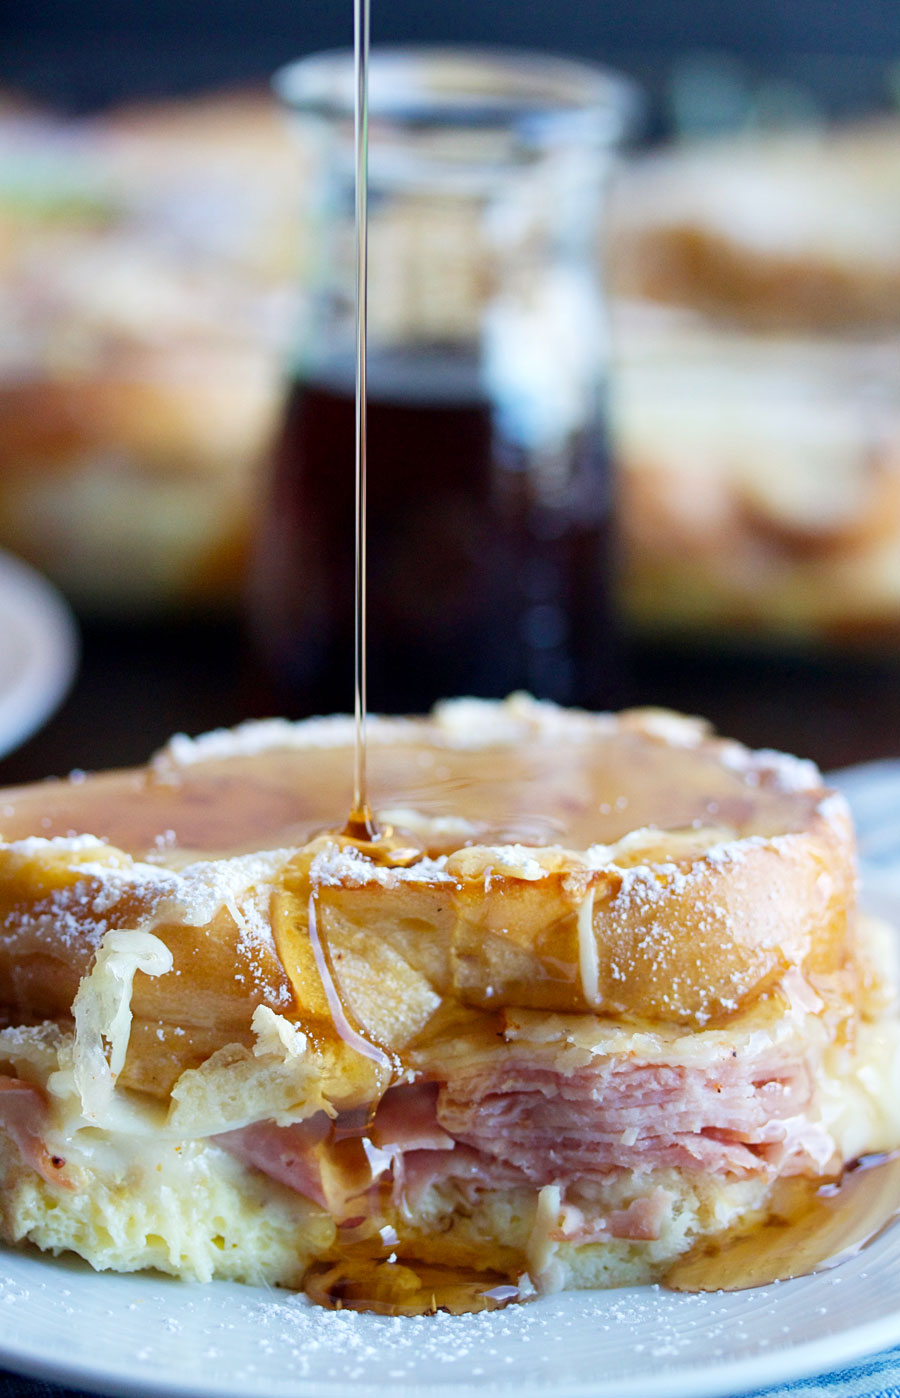 Monte Cristo Casserole with syrup being poured over a piece